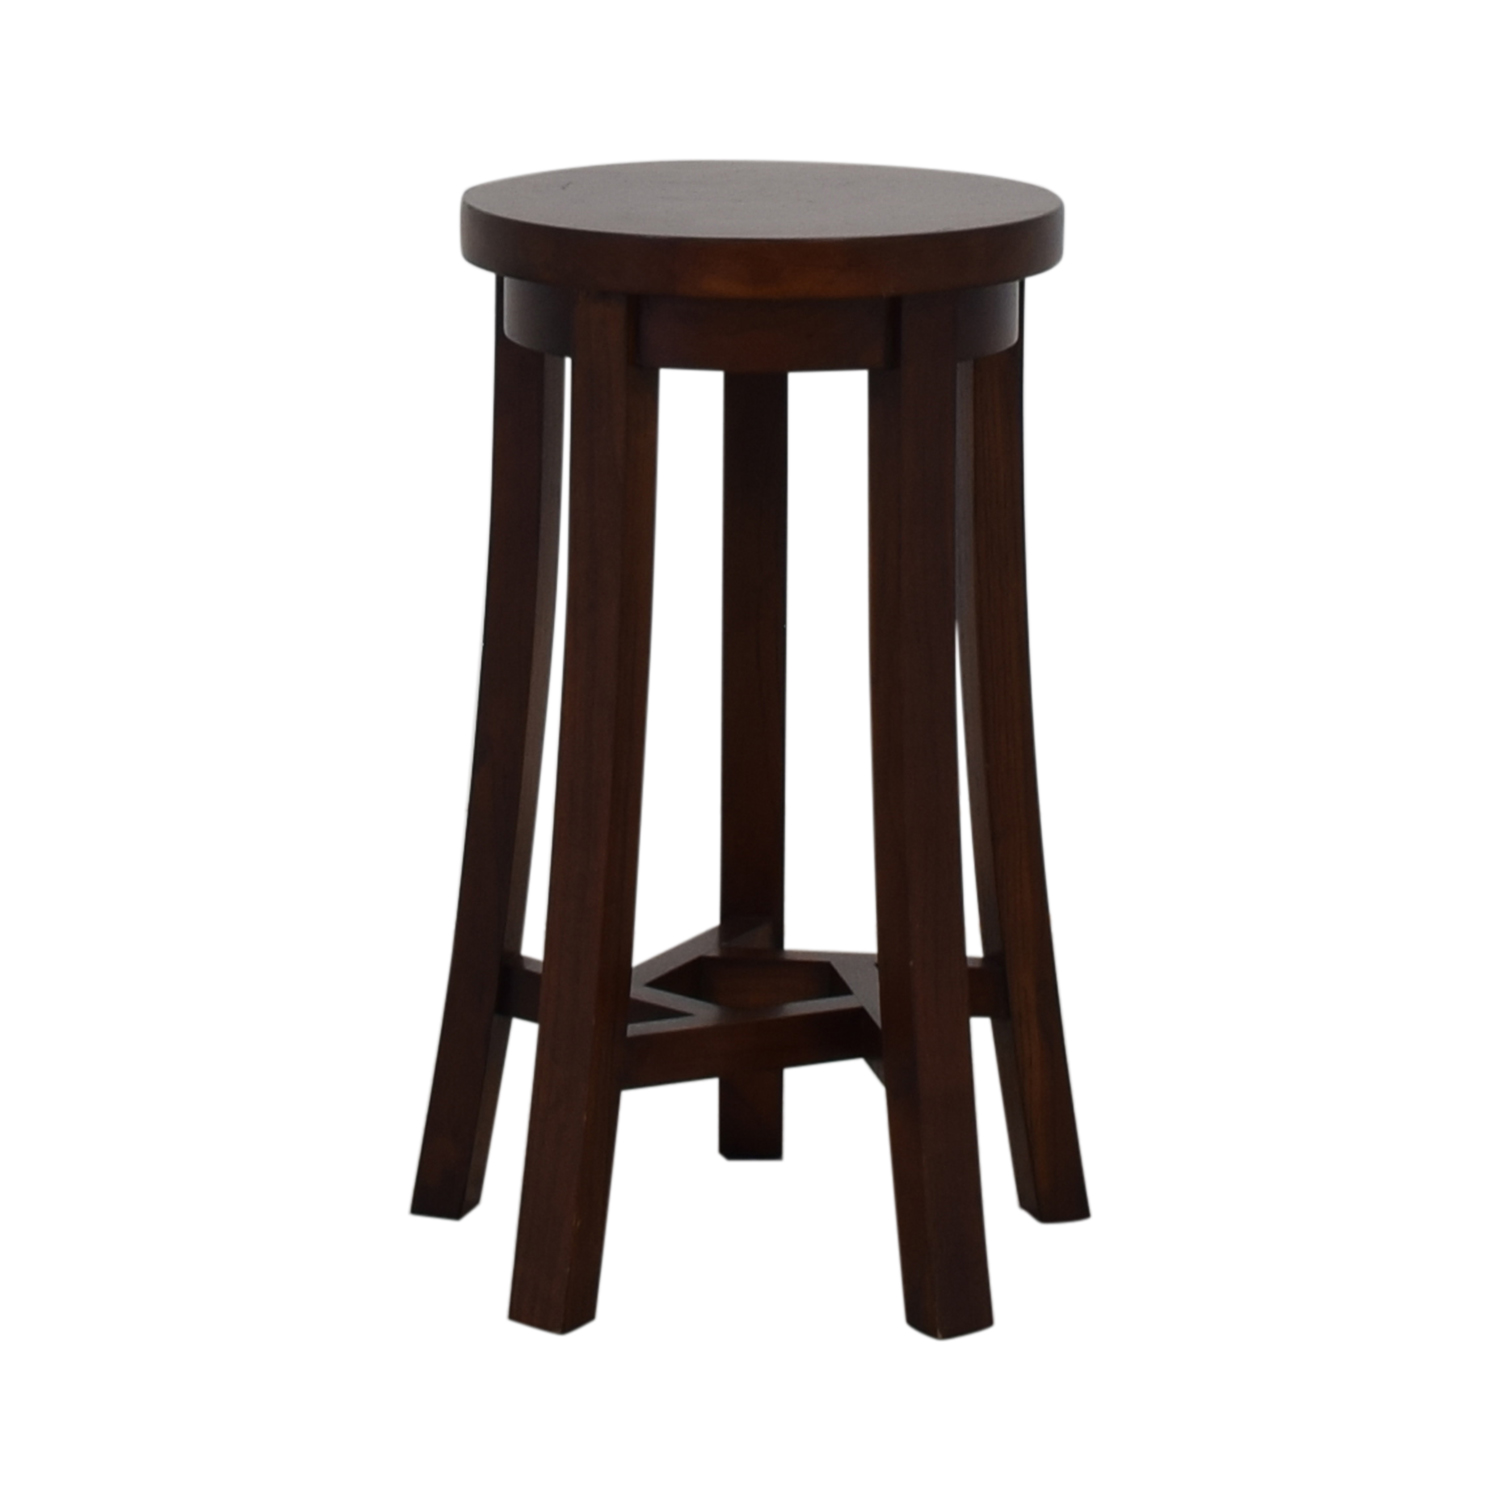 buy Room & Board by Maria Yee Mingshi Round End Table Room & Board